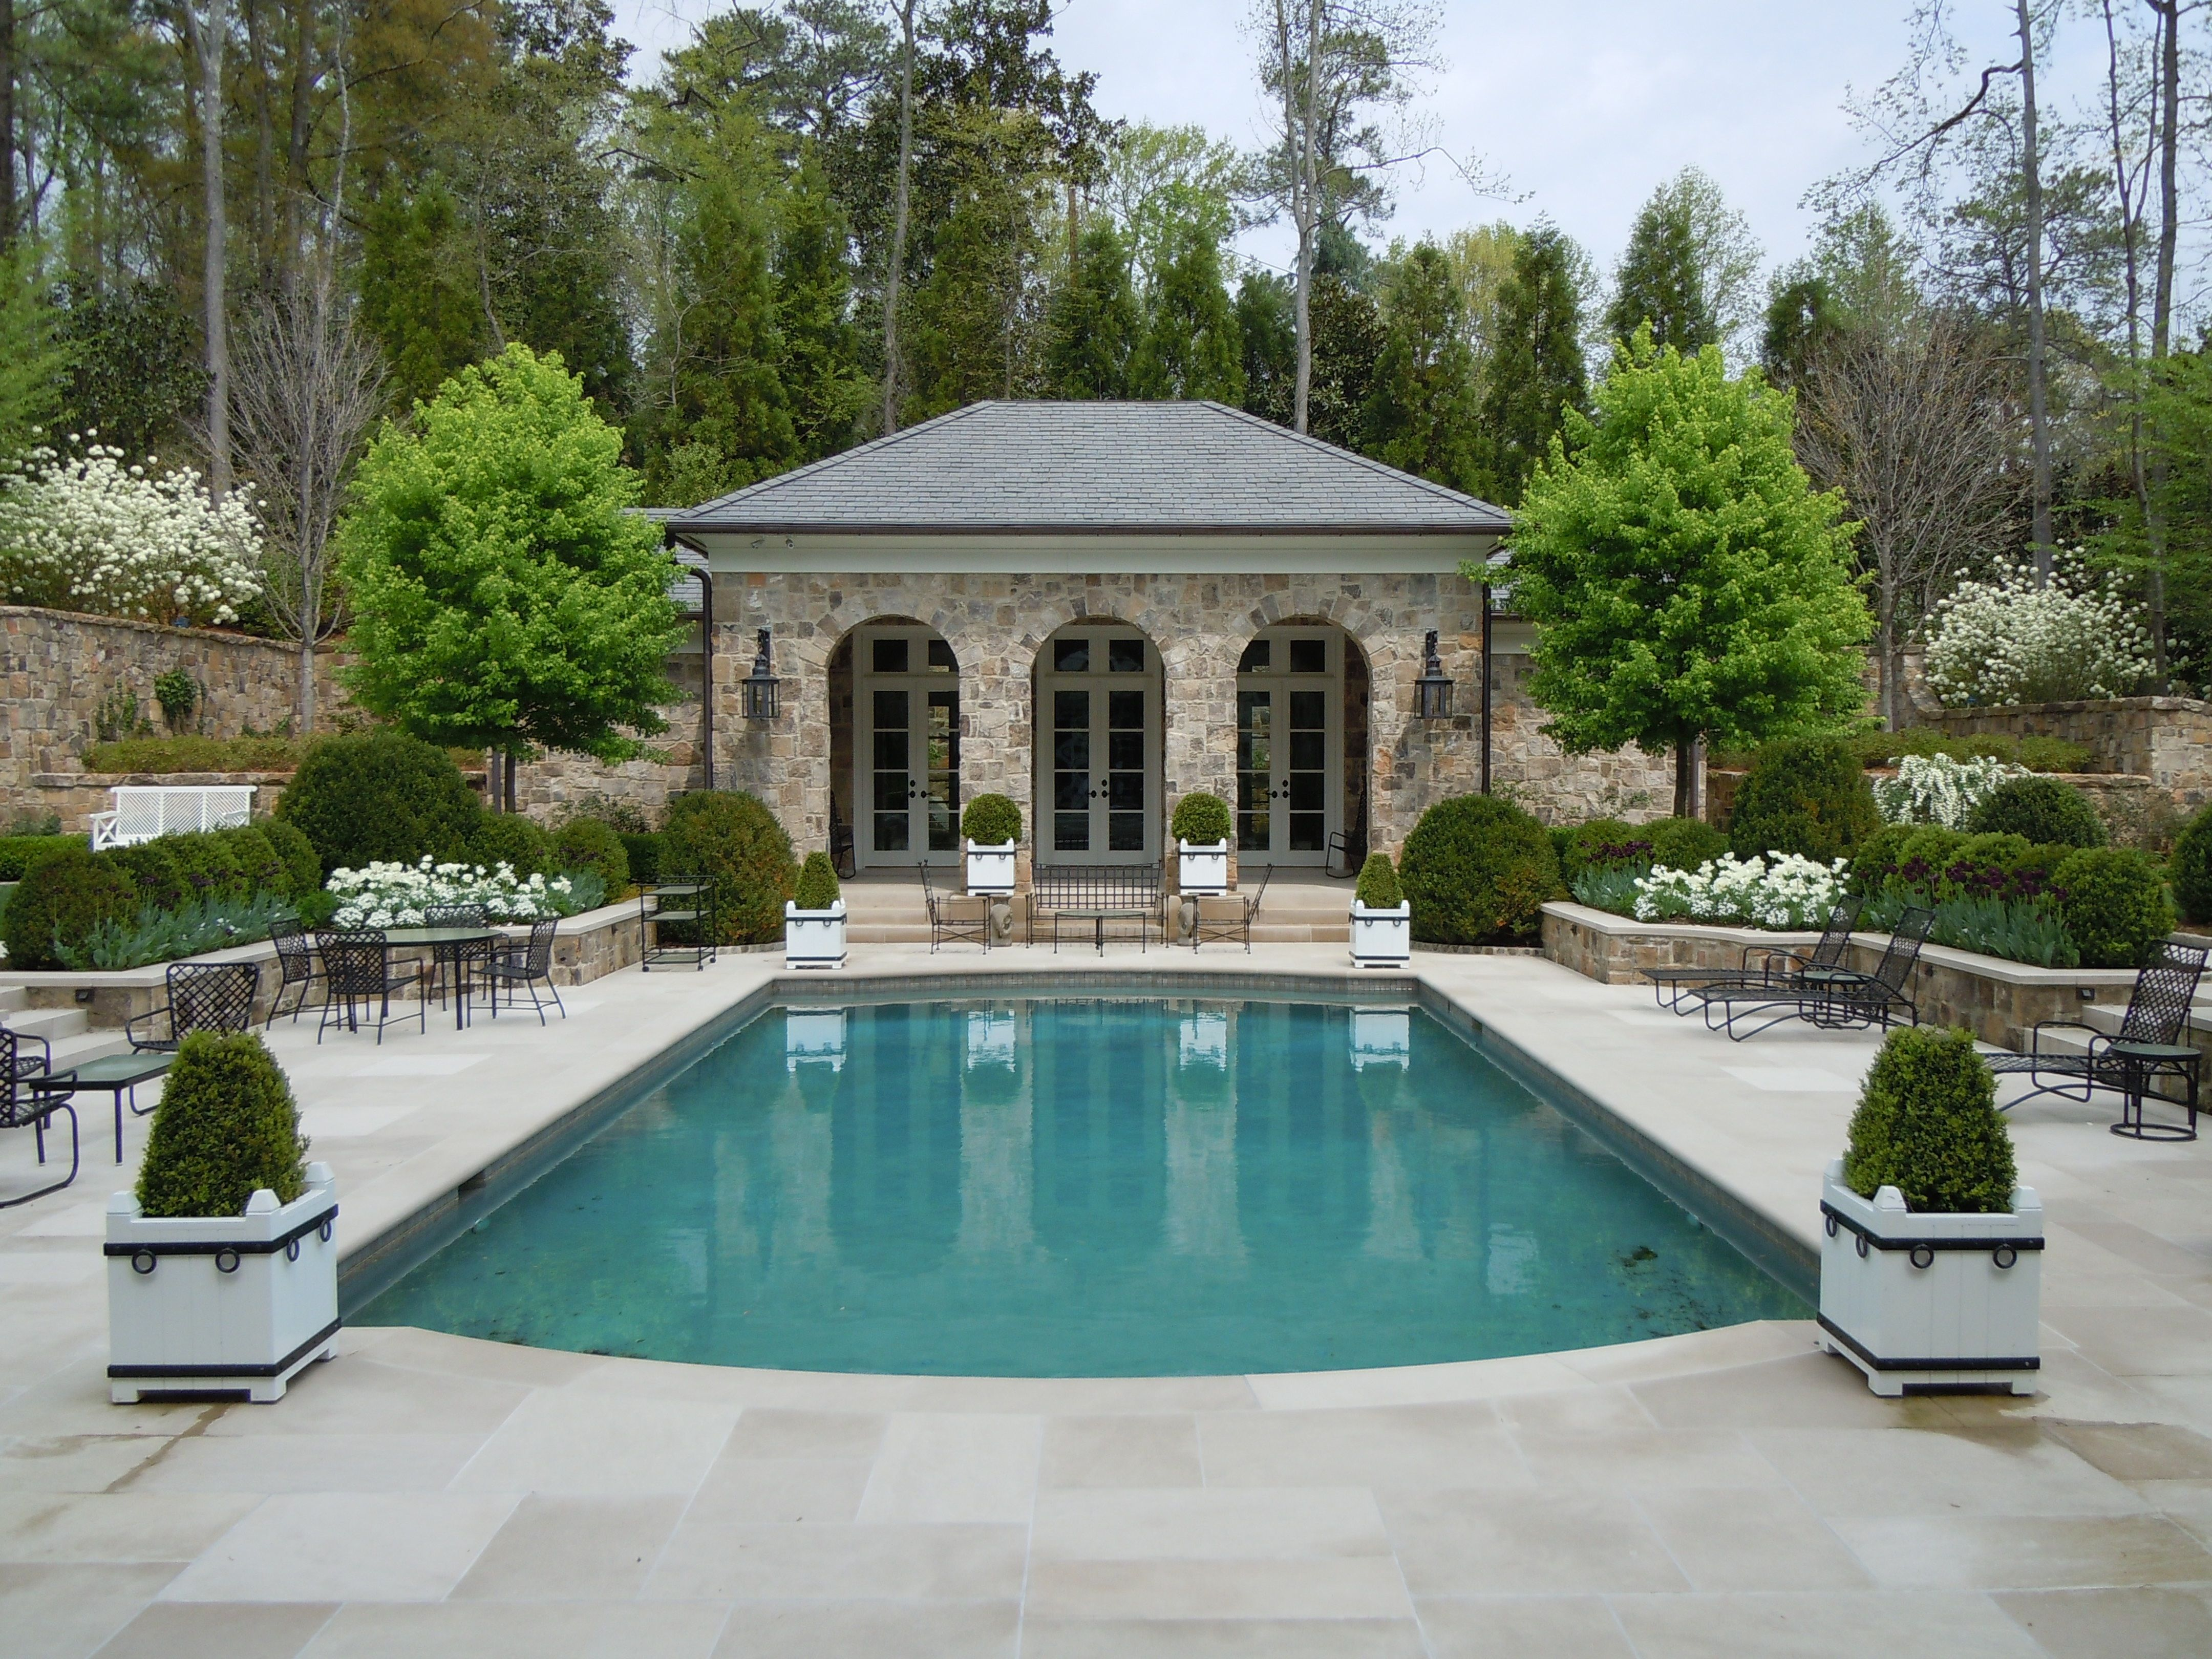 a pool and garden design by howard design studio white blooms in early spring - Pool Design Ideen Landschaft